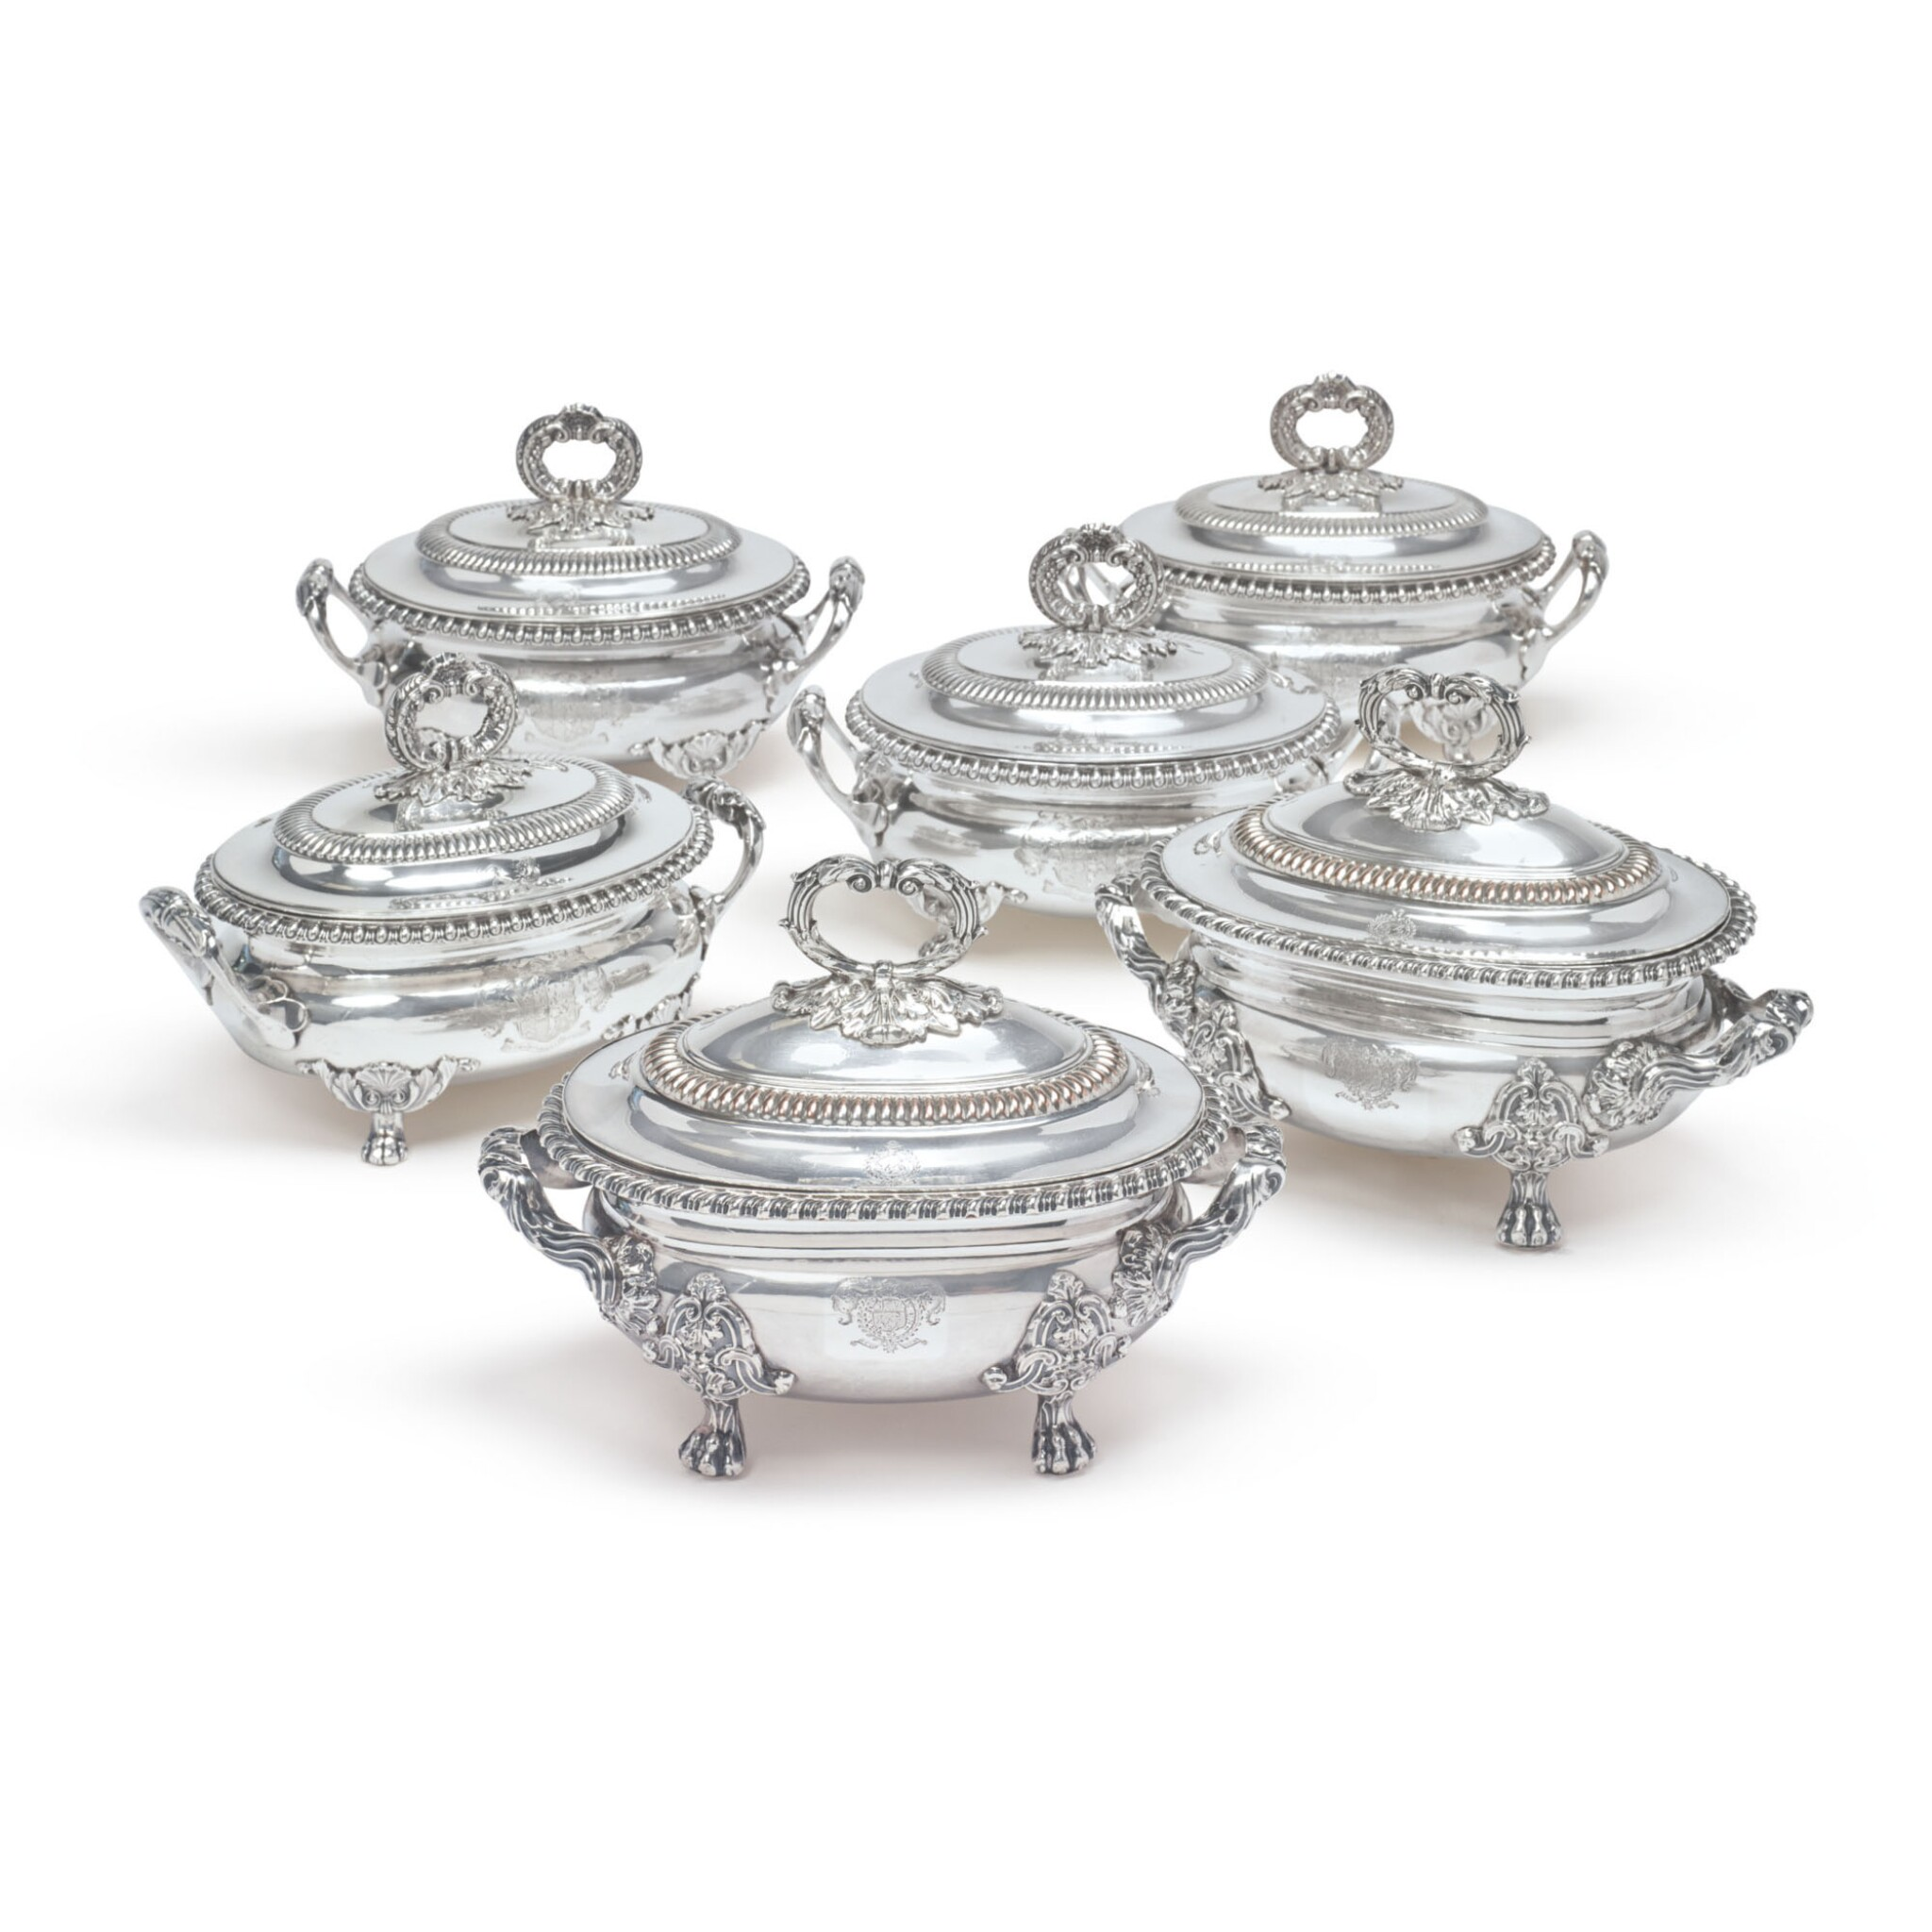 View full screen - View 1 of Lot 788. A SET OF FOUR REGENCY SILVER SAUCE TUREENS AND COVERS, BENJAMIN SMITH II & BENJAMIN SMITH III, LONDON, 1817.